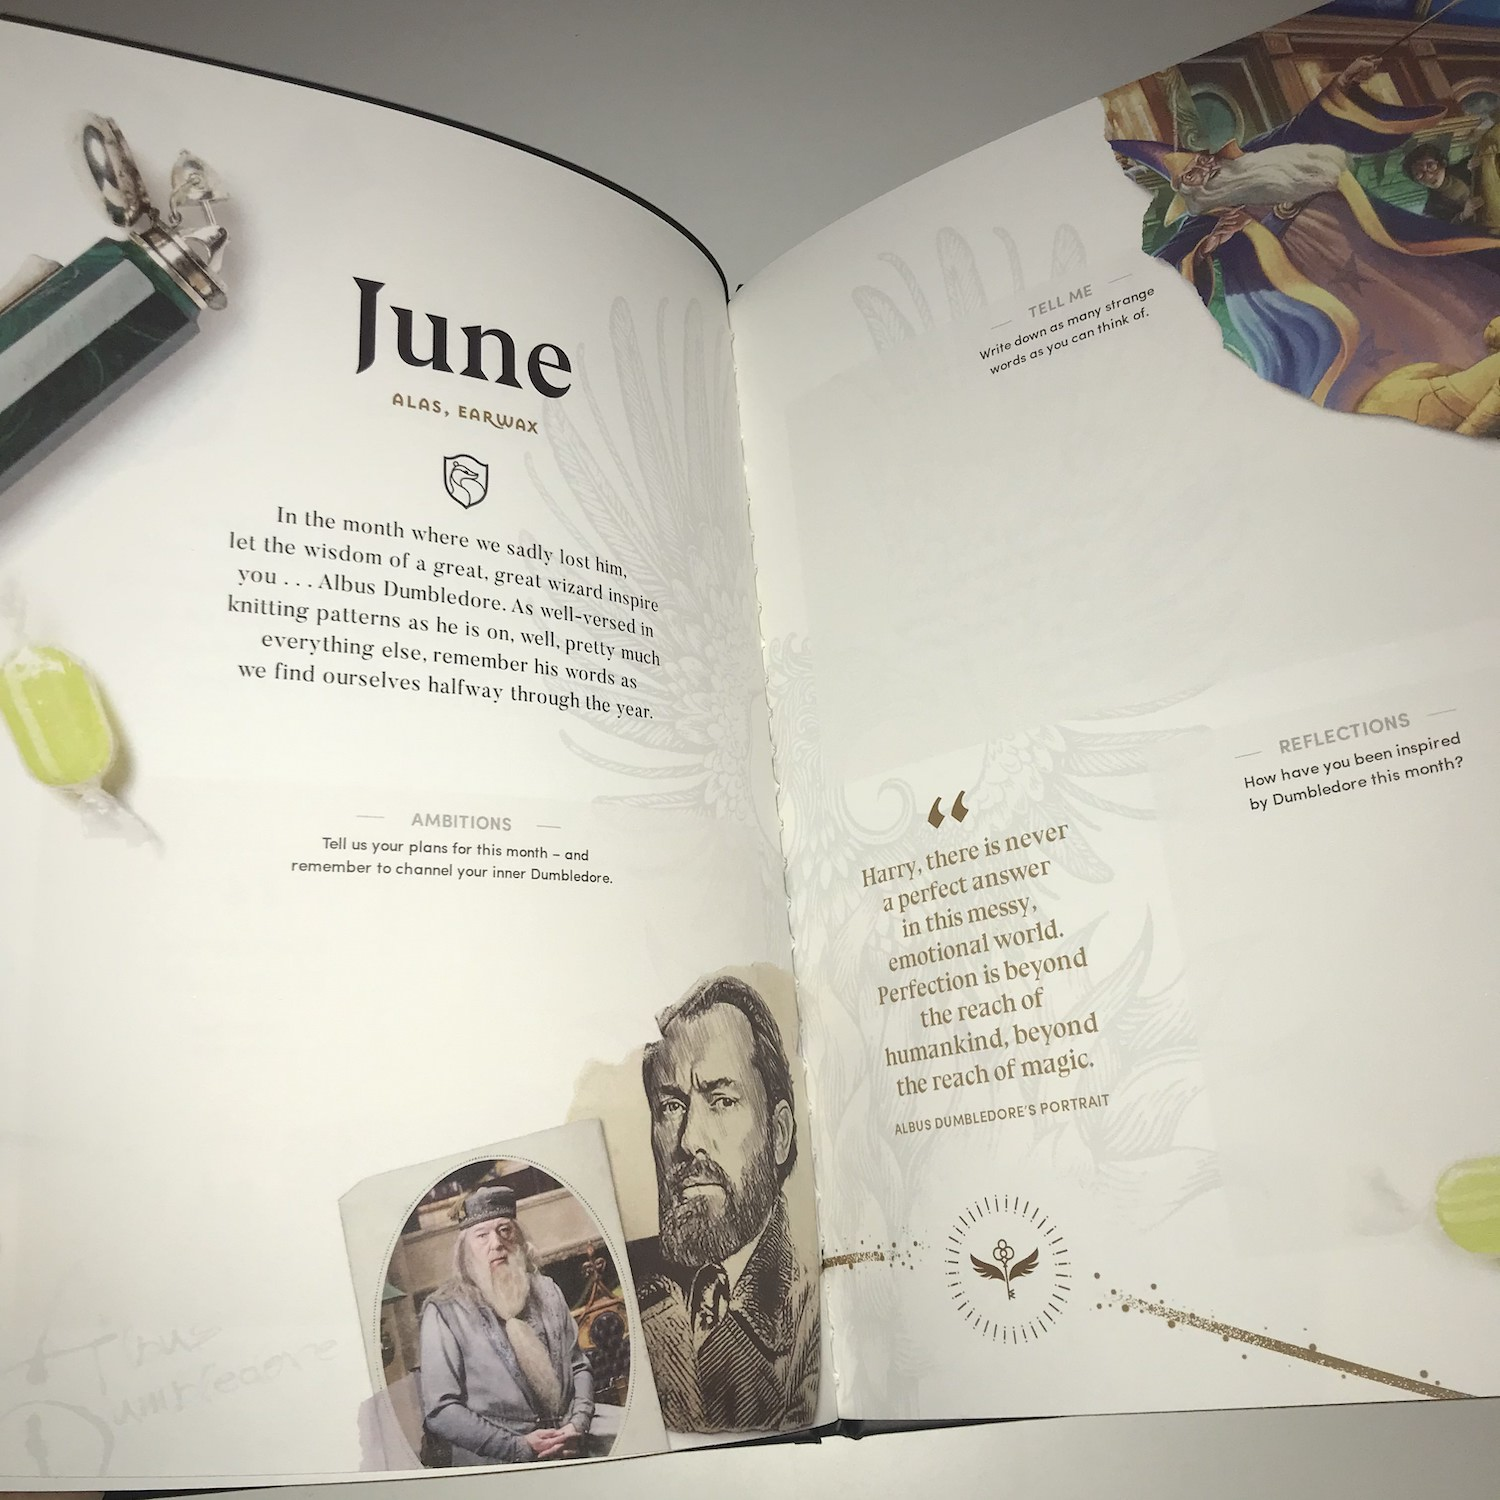 June is an homage to Albus Dumbledore, featuring his Deluminator, a lemon drop, and both Sir Michael Gambon and Jude Law in characters (but sadly, no Richard Harris!).